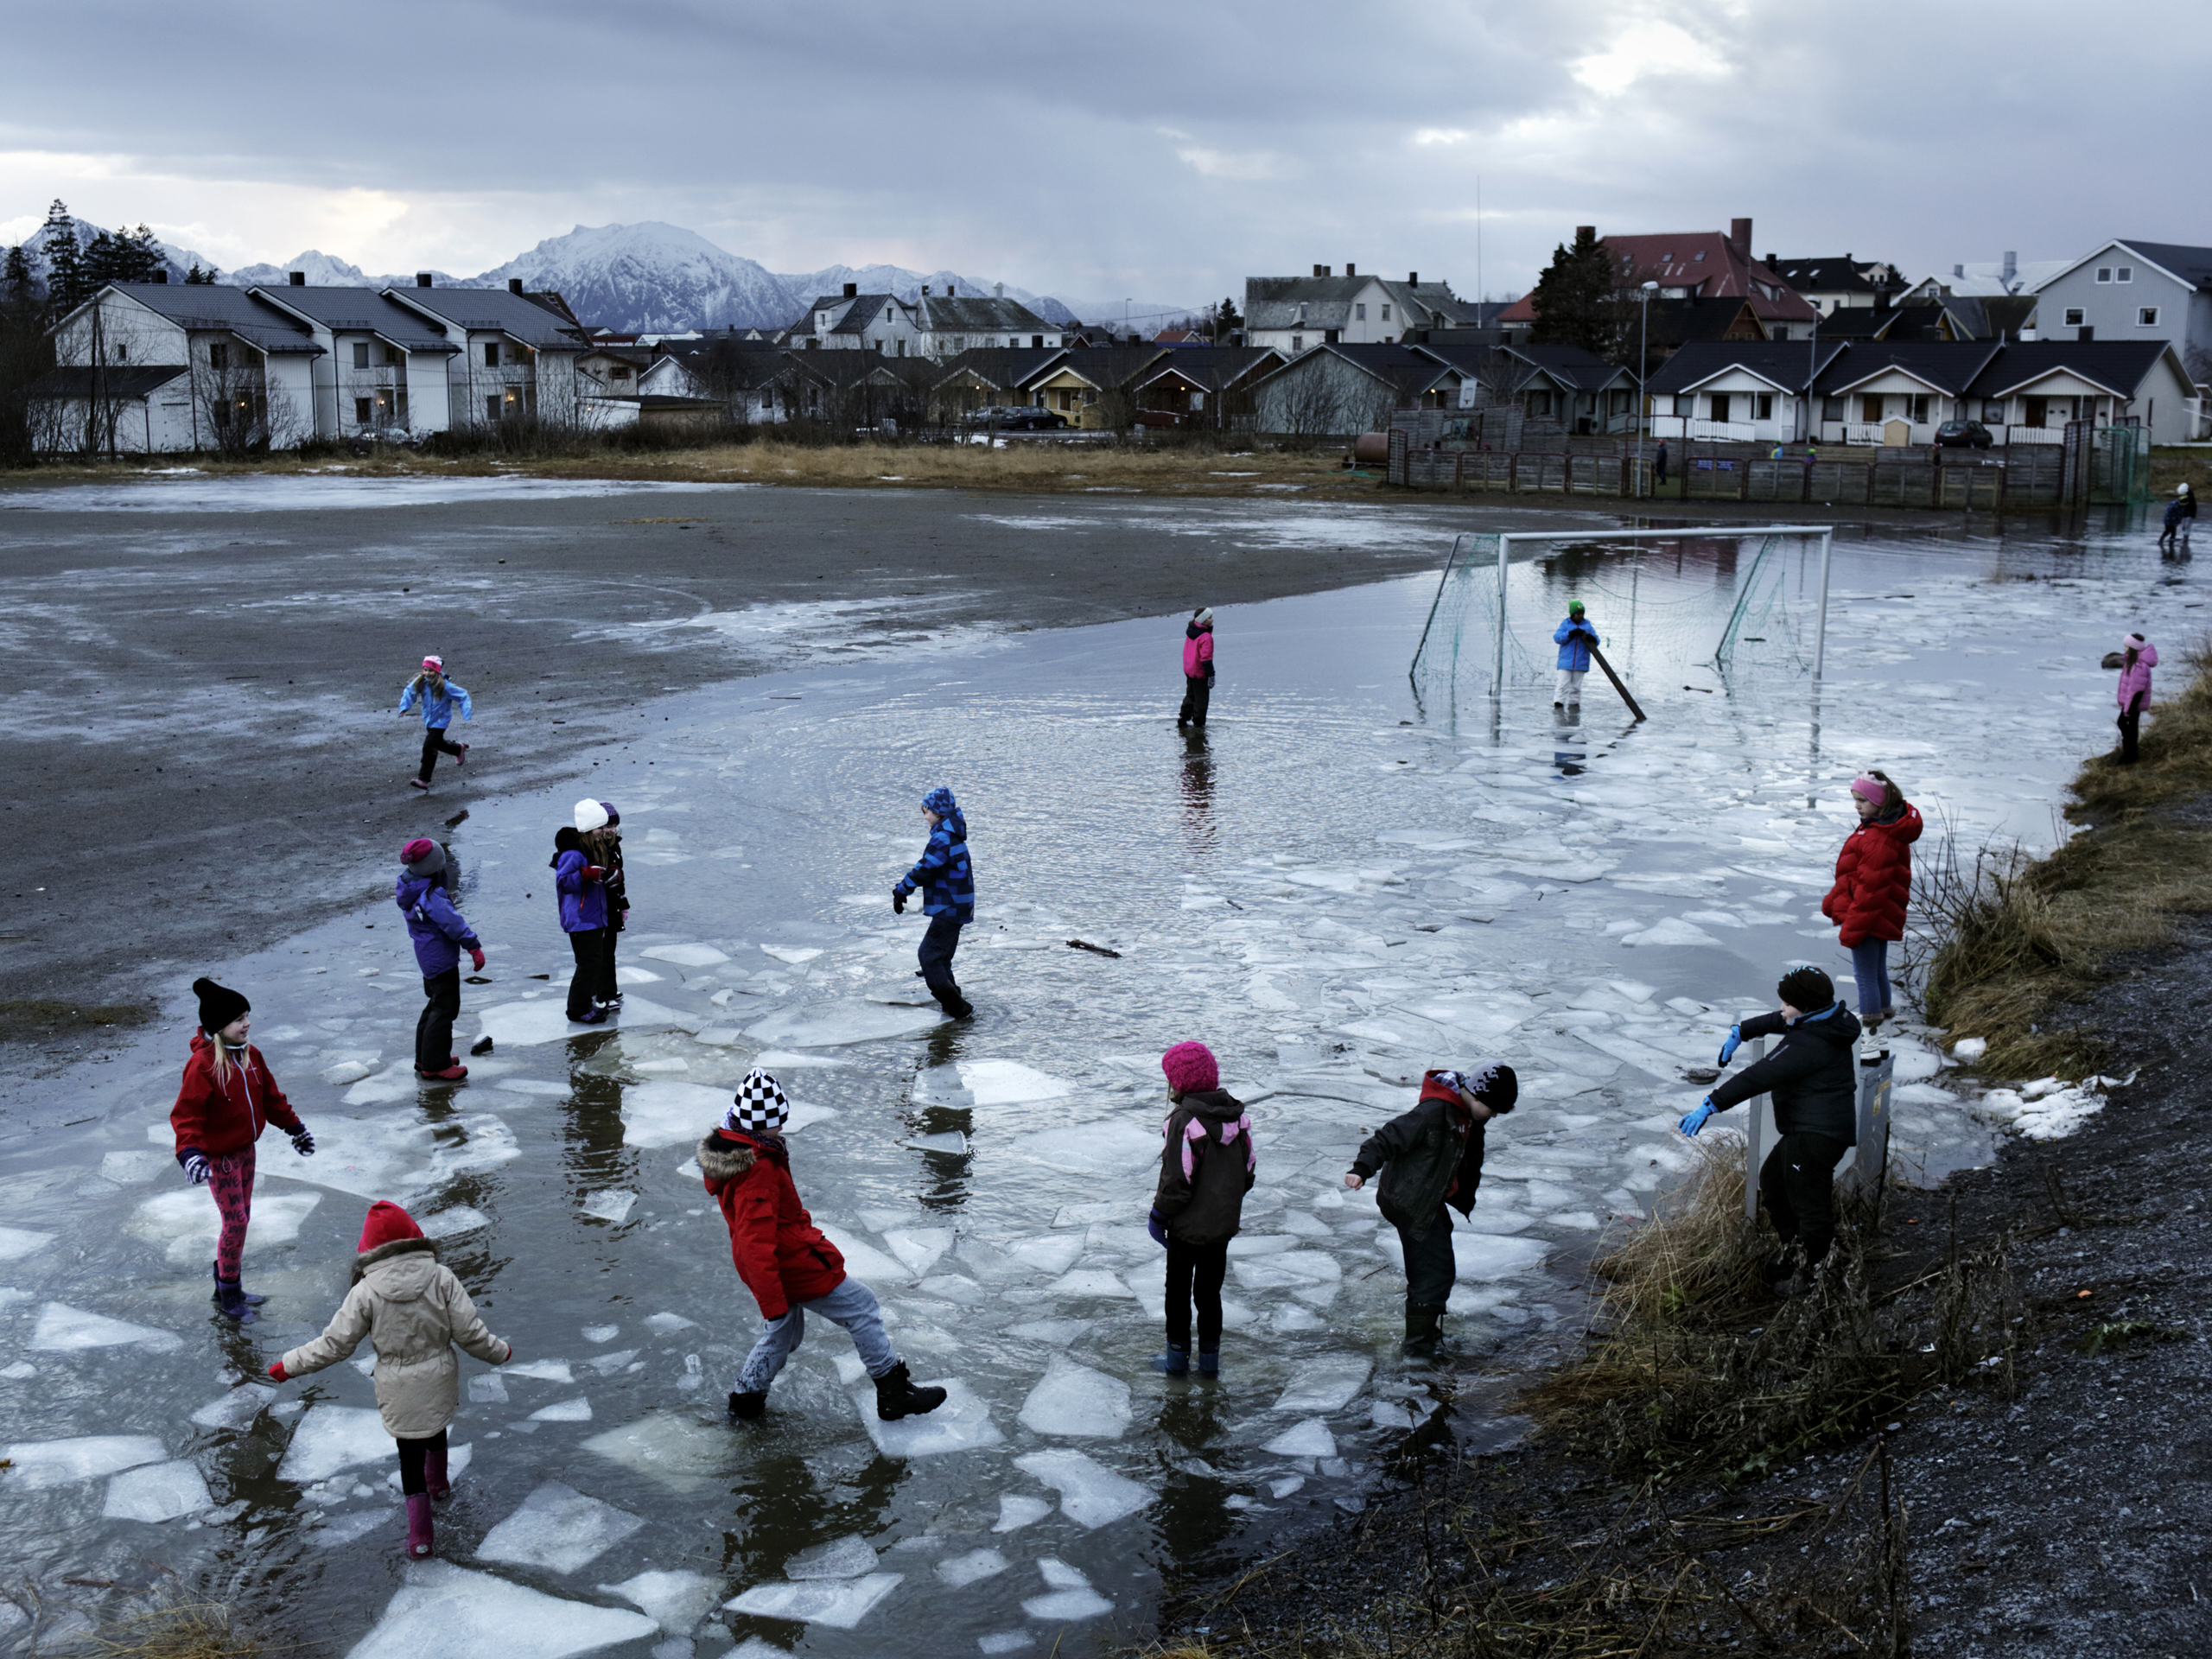 In Melbu, children play on ice floes in the schoolyard. 2012, Vesterålen, Norway.